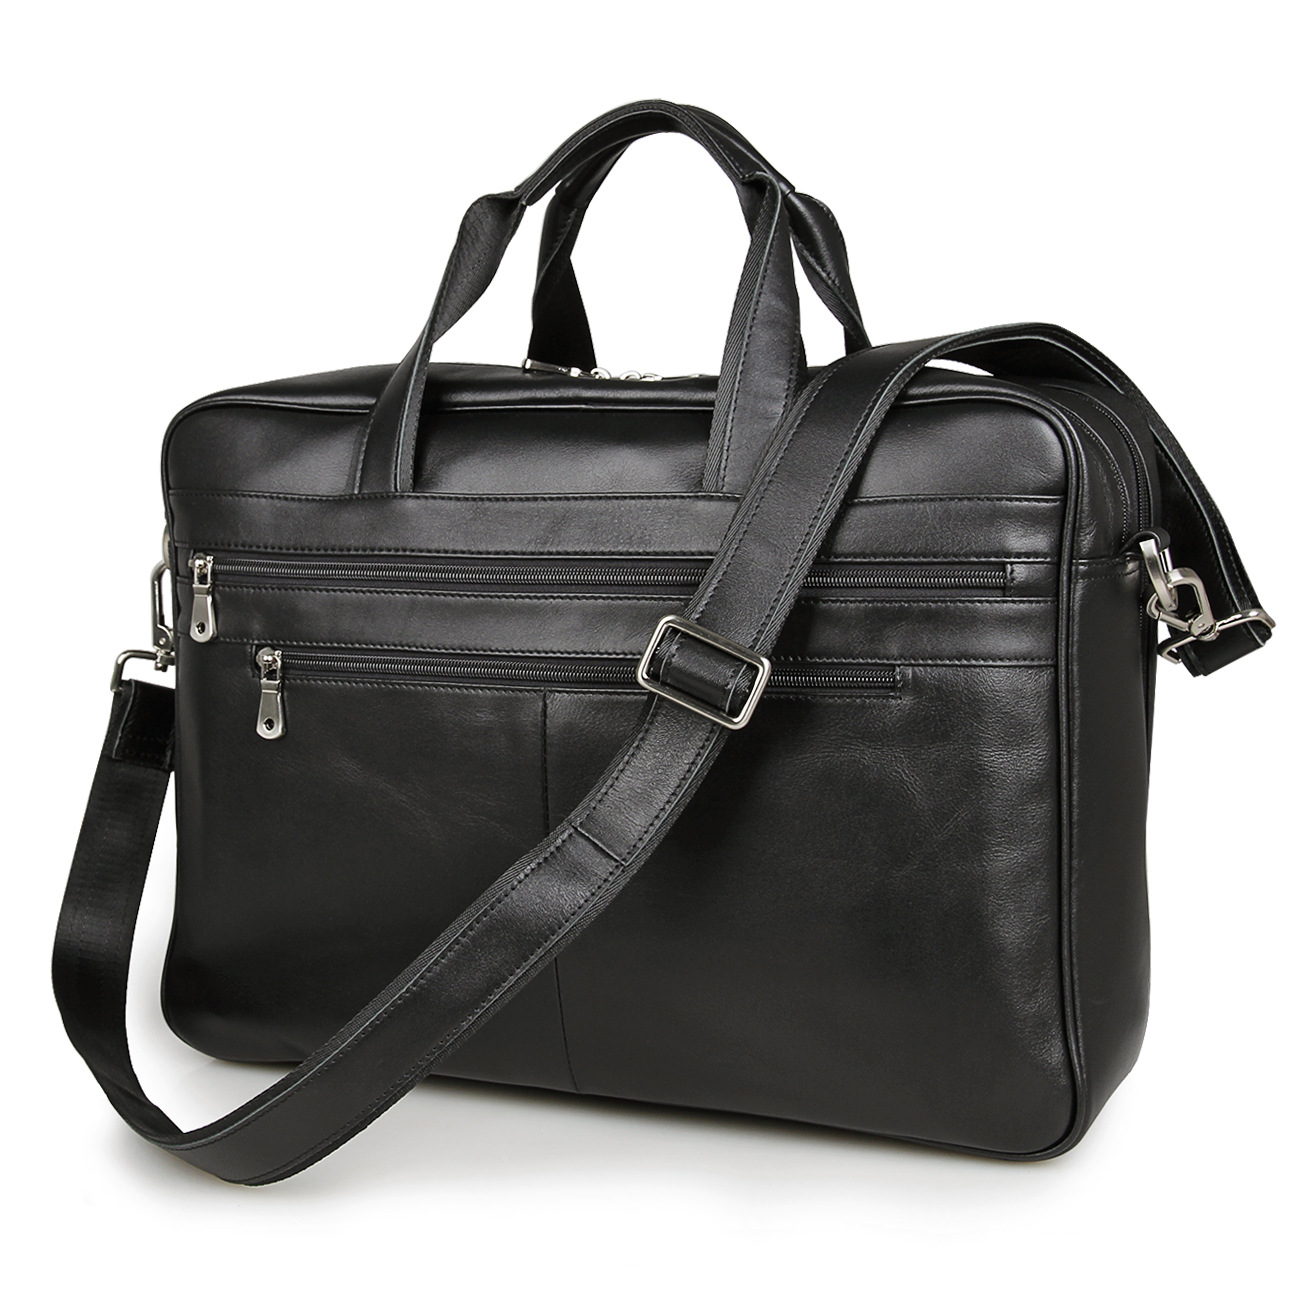 Men Fashion Briefcase Business Shoulder Genuine Leather Bag Men Messenger Bag Cool Computer Laptop Handbag Bag Men's Travel Bags 2017 men casual briefcase business shoulder genuine leather bag men messenger bags computer laptop handbag bag men s travel bags